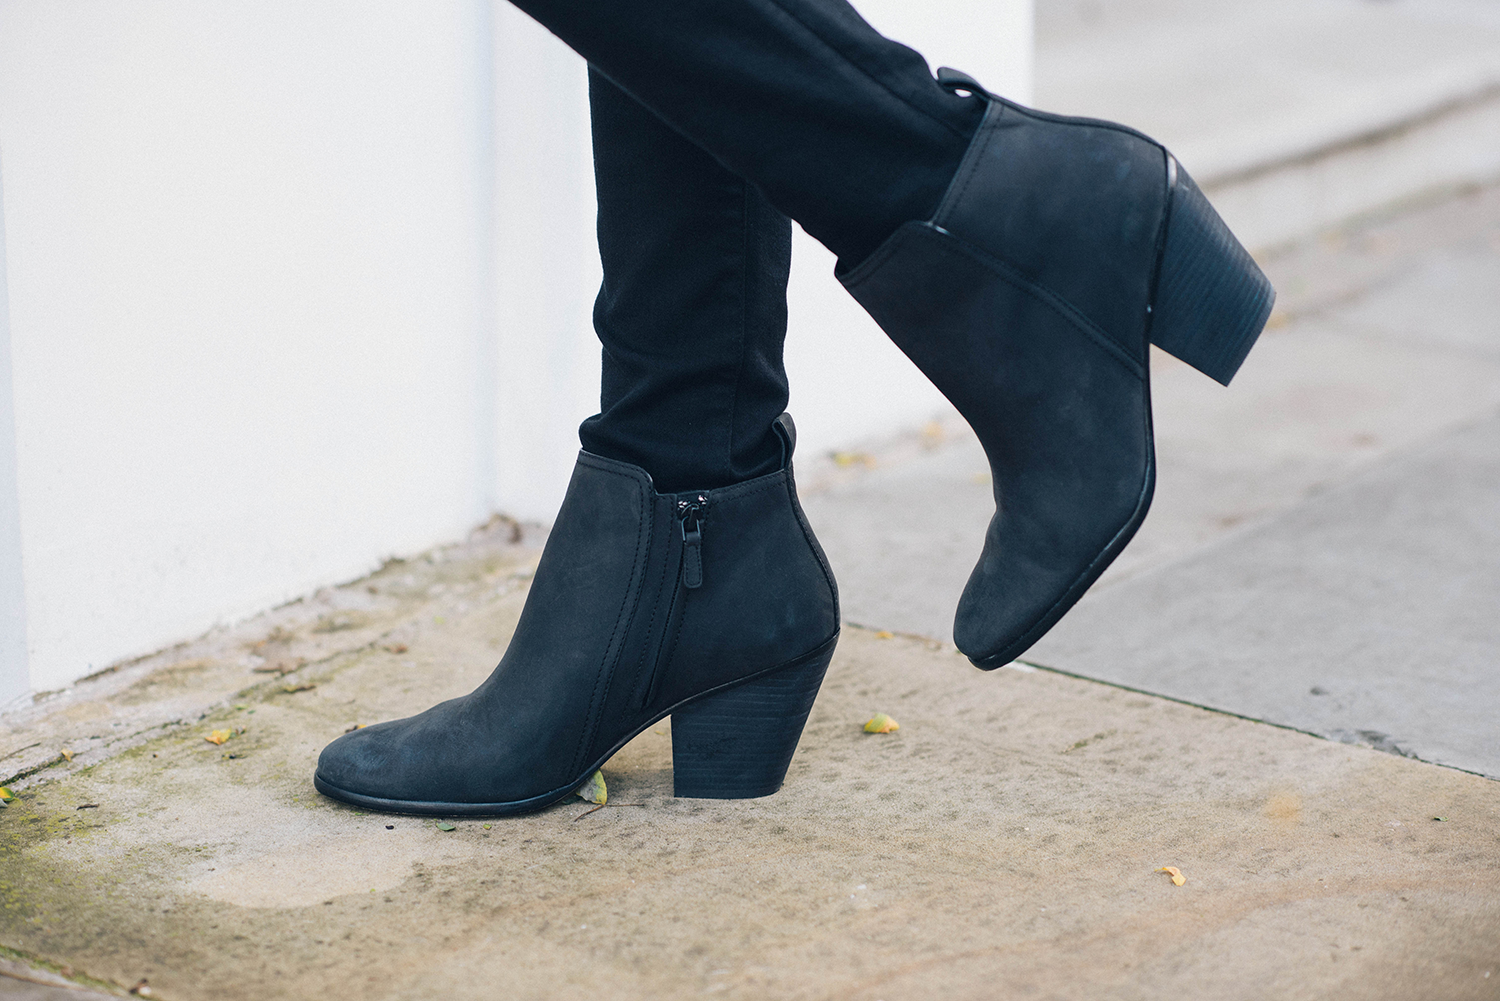 Cole Haan Ankle Boots | The Style Scribe